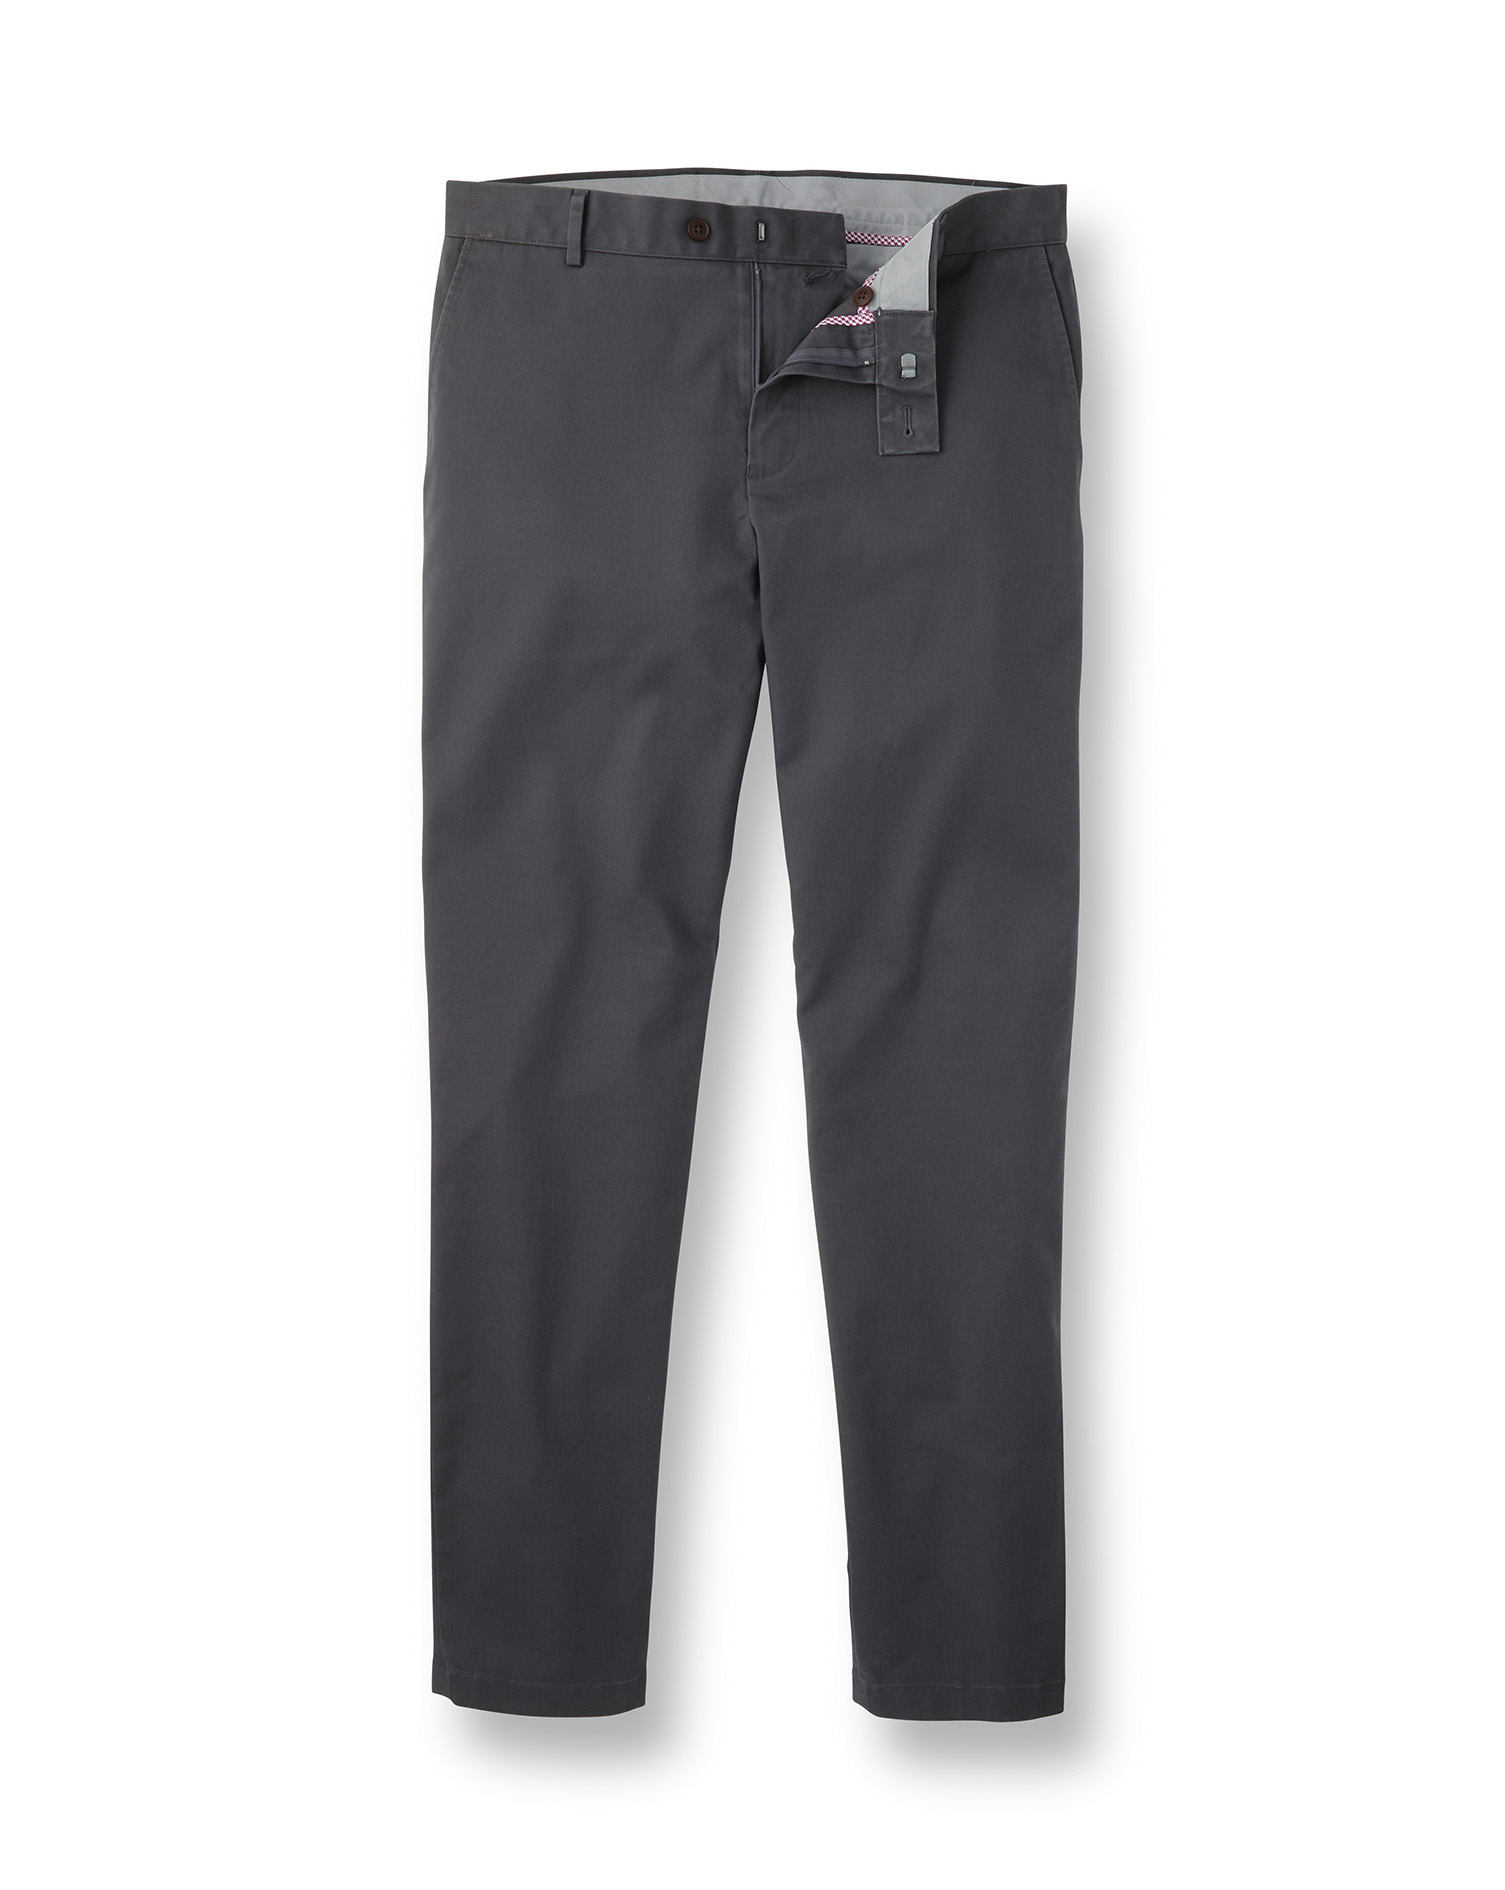 Charcoal Non-Iron Ultimate Cotton Chino Trousers Size W40 L30 by Charles Tyrwhitt